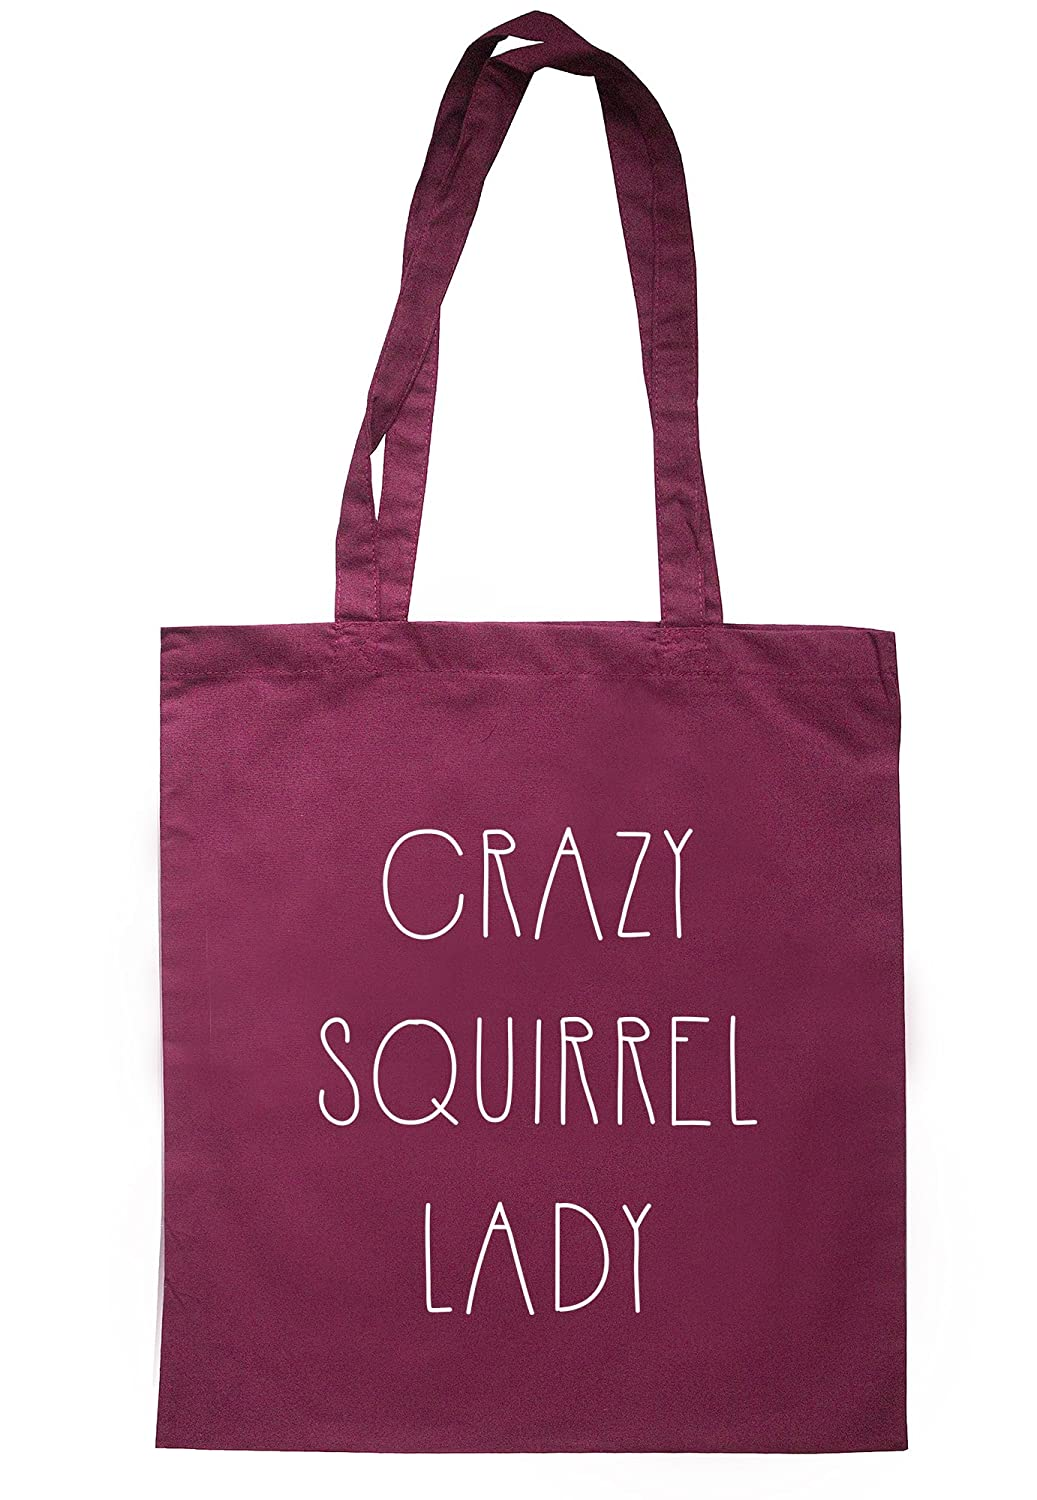 illustratedidentity Crazy Squirrel Lady Tote Bag 37.5cm x 42cm with long handles TB0382-TB-NV